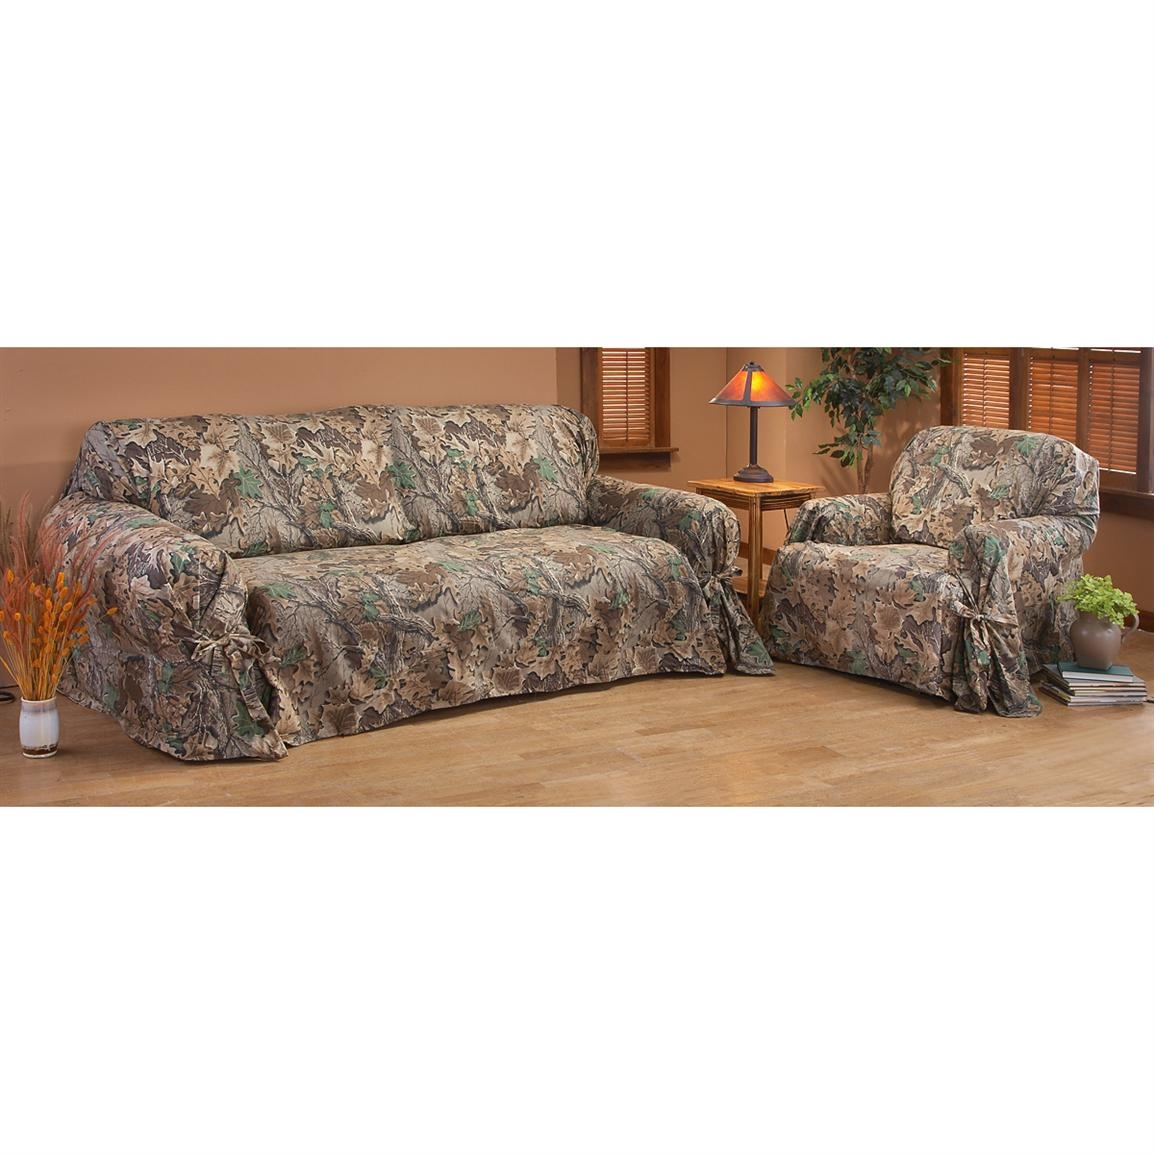 Camo Sofa Cover Couches Furniture Gallery Throughout Camo Sofa Cover (Image 2 of 15)